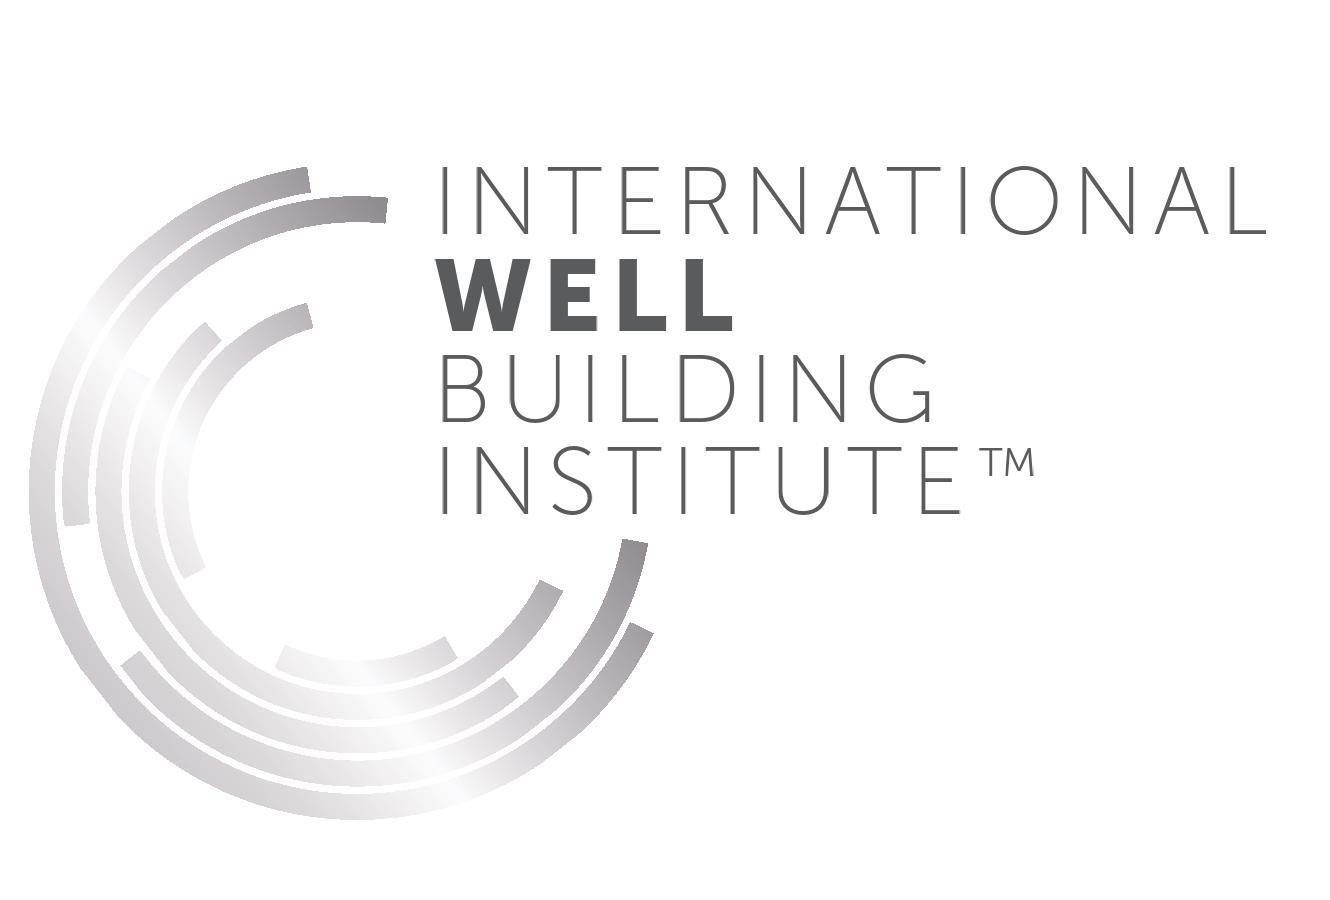 """A silver semi-circle logo next to the words """"International Well Building Institute"""" on a white background."""